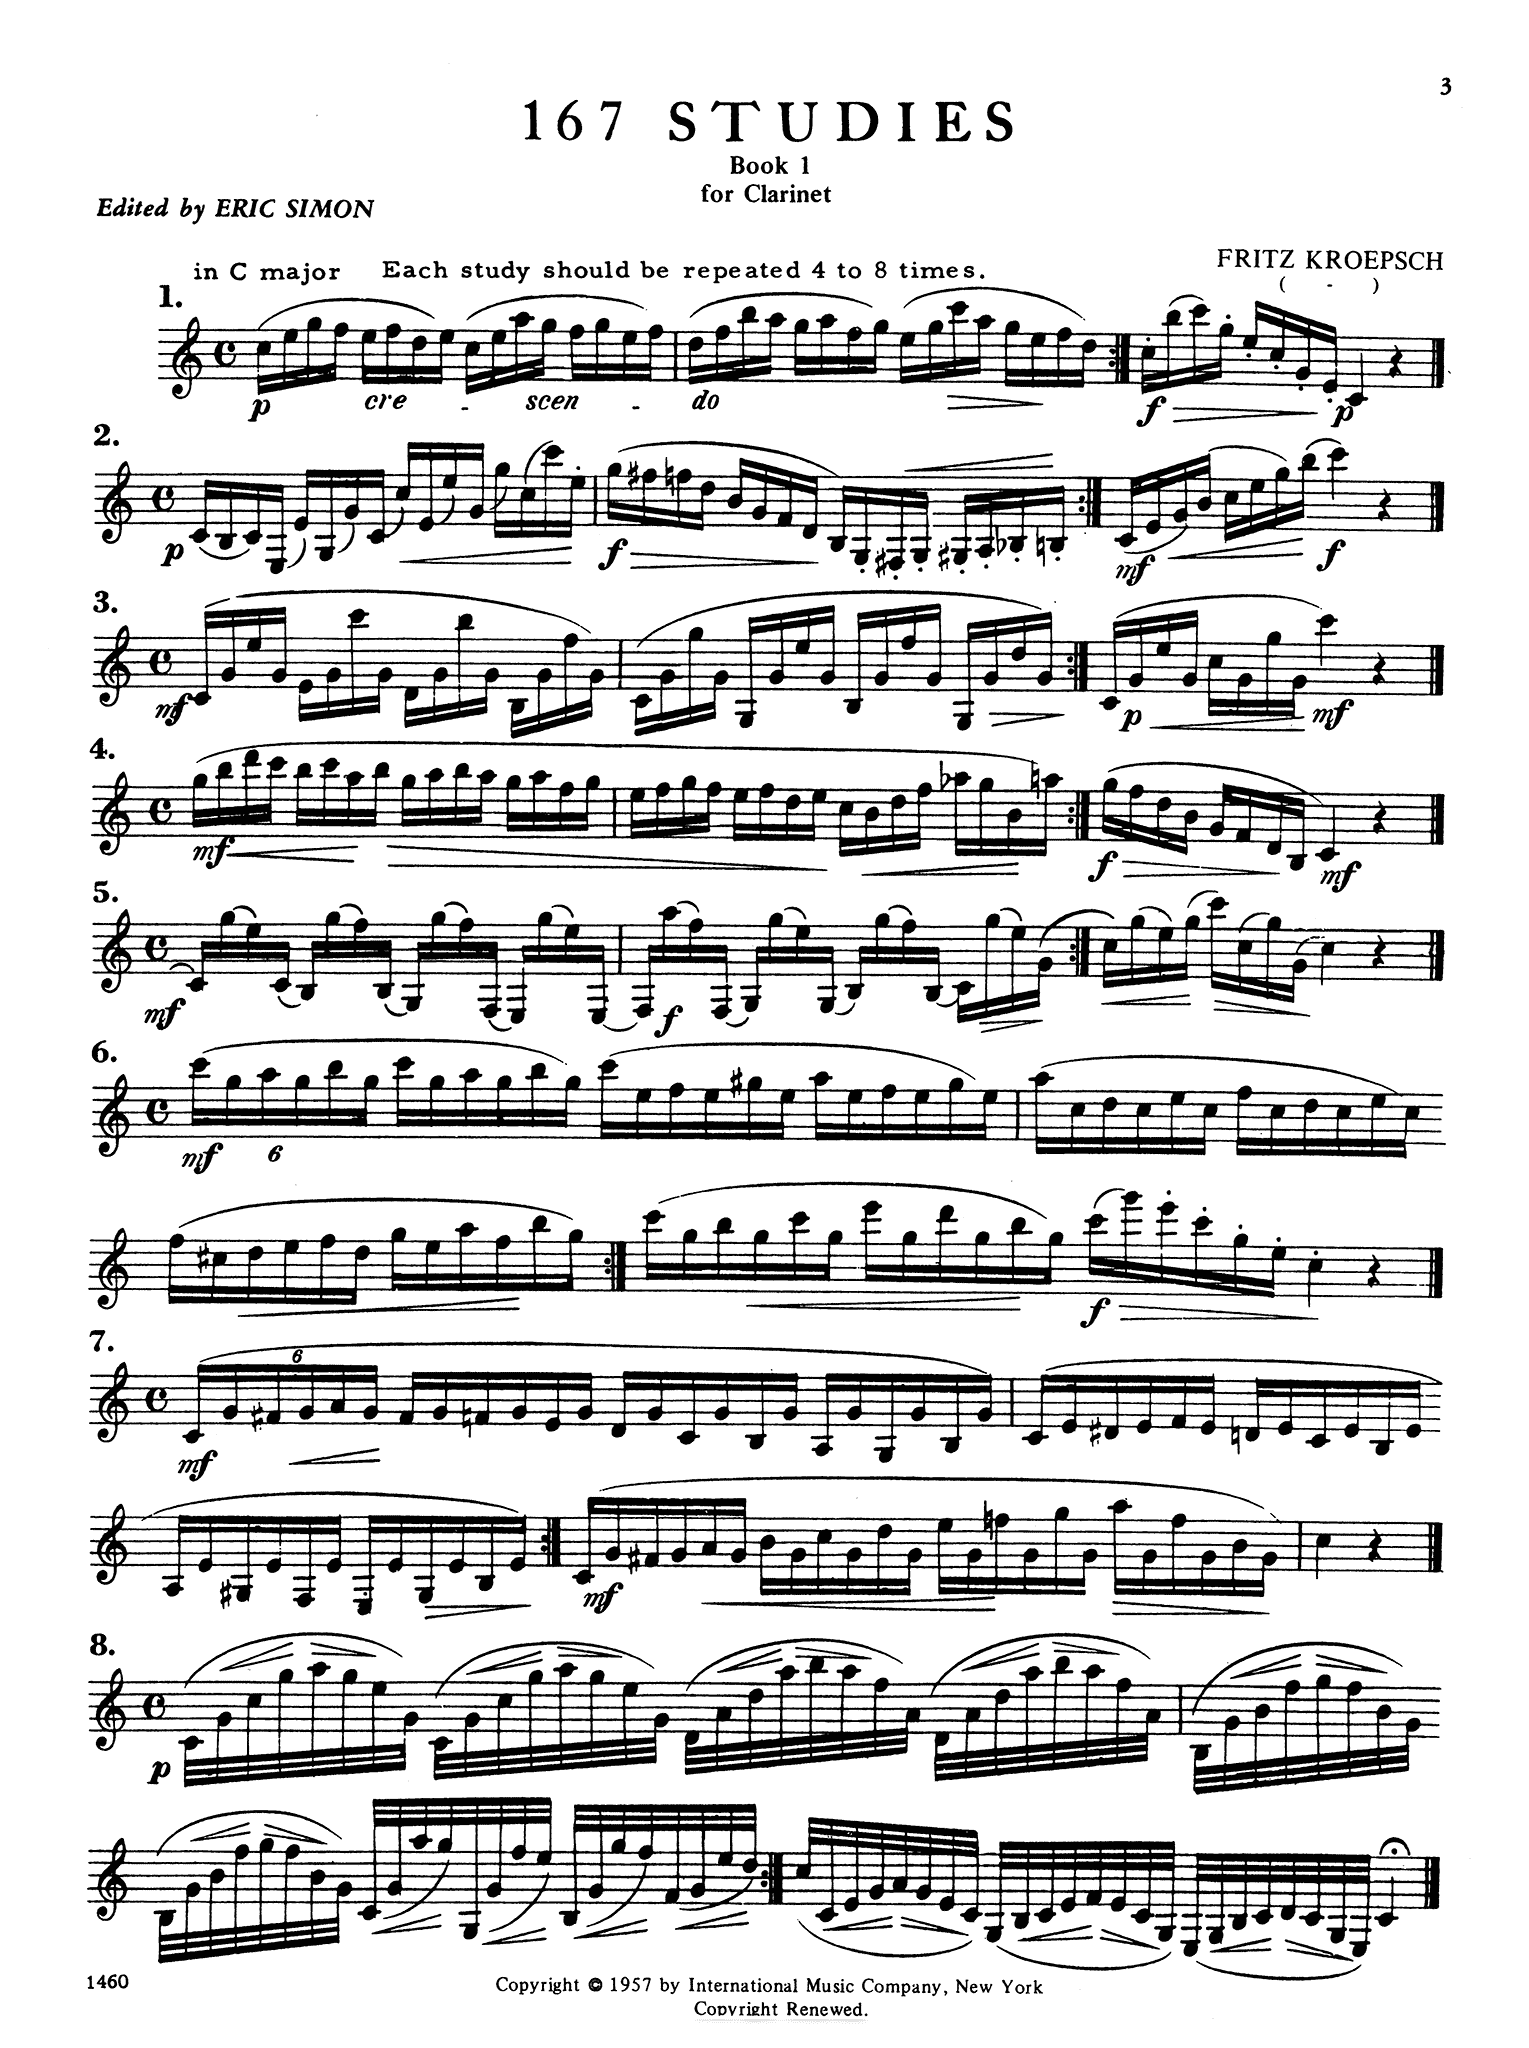 416 Progressive Studies for Clarinet, Book 1 Page 3